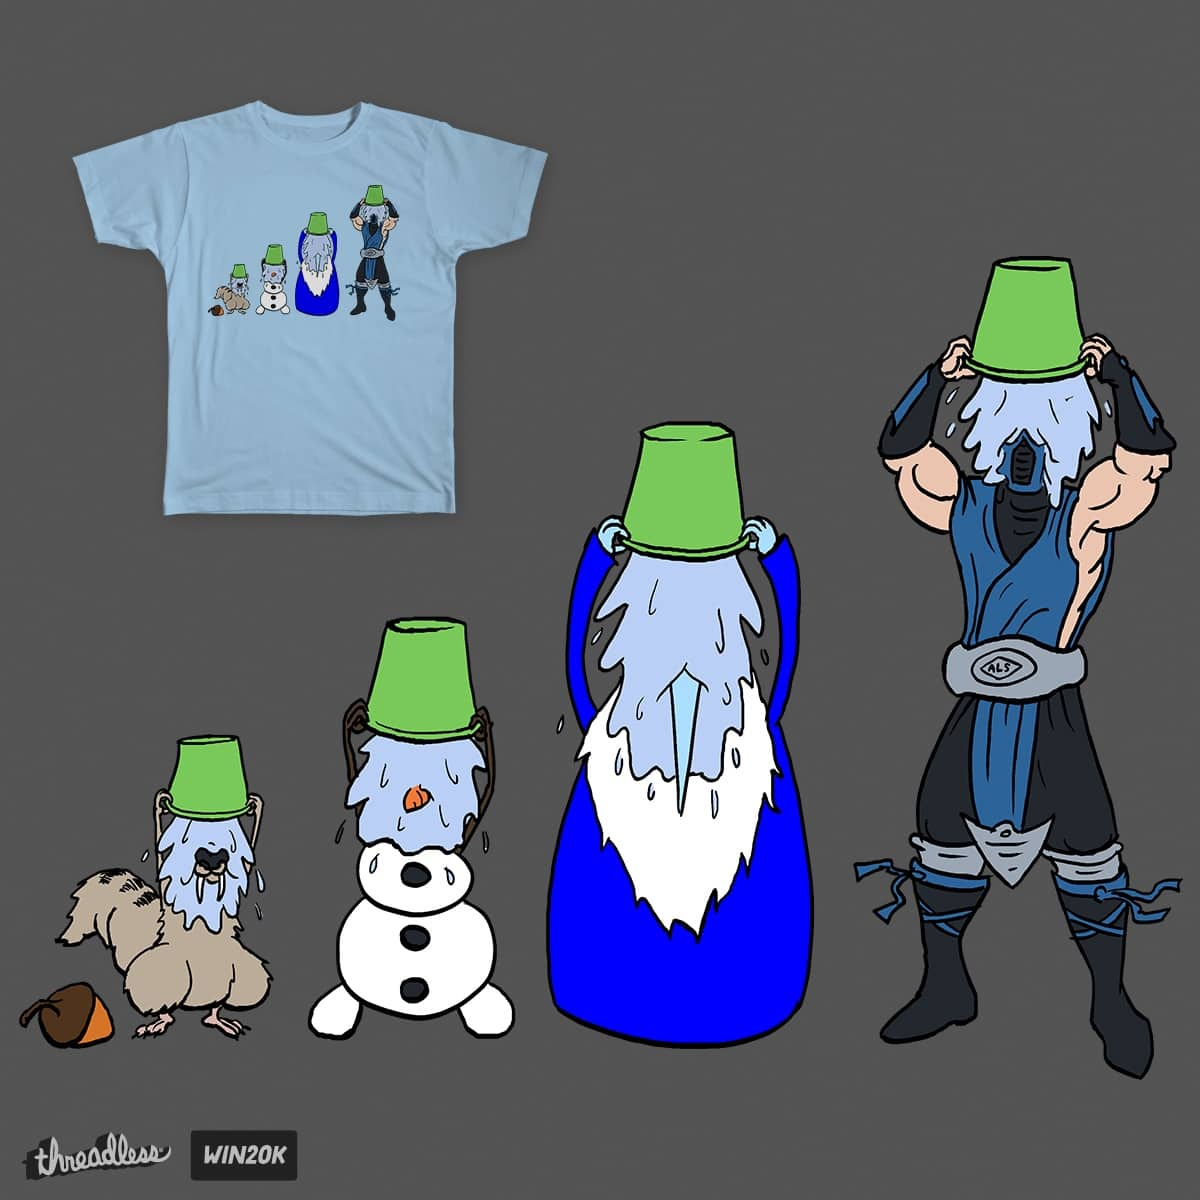 Cold Shower by Mantichore on Threadless